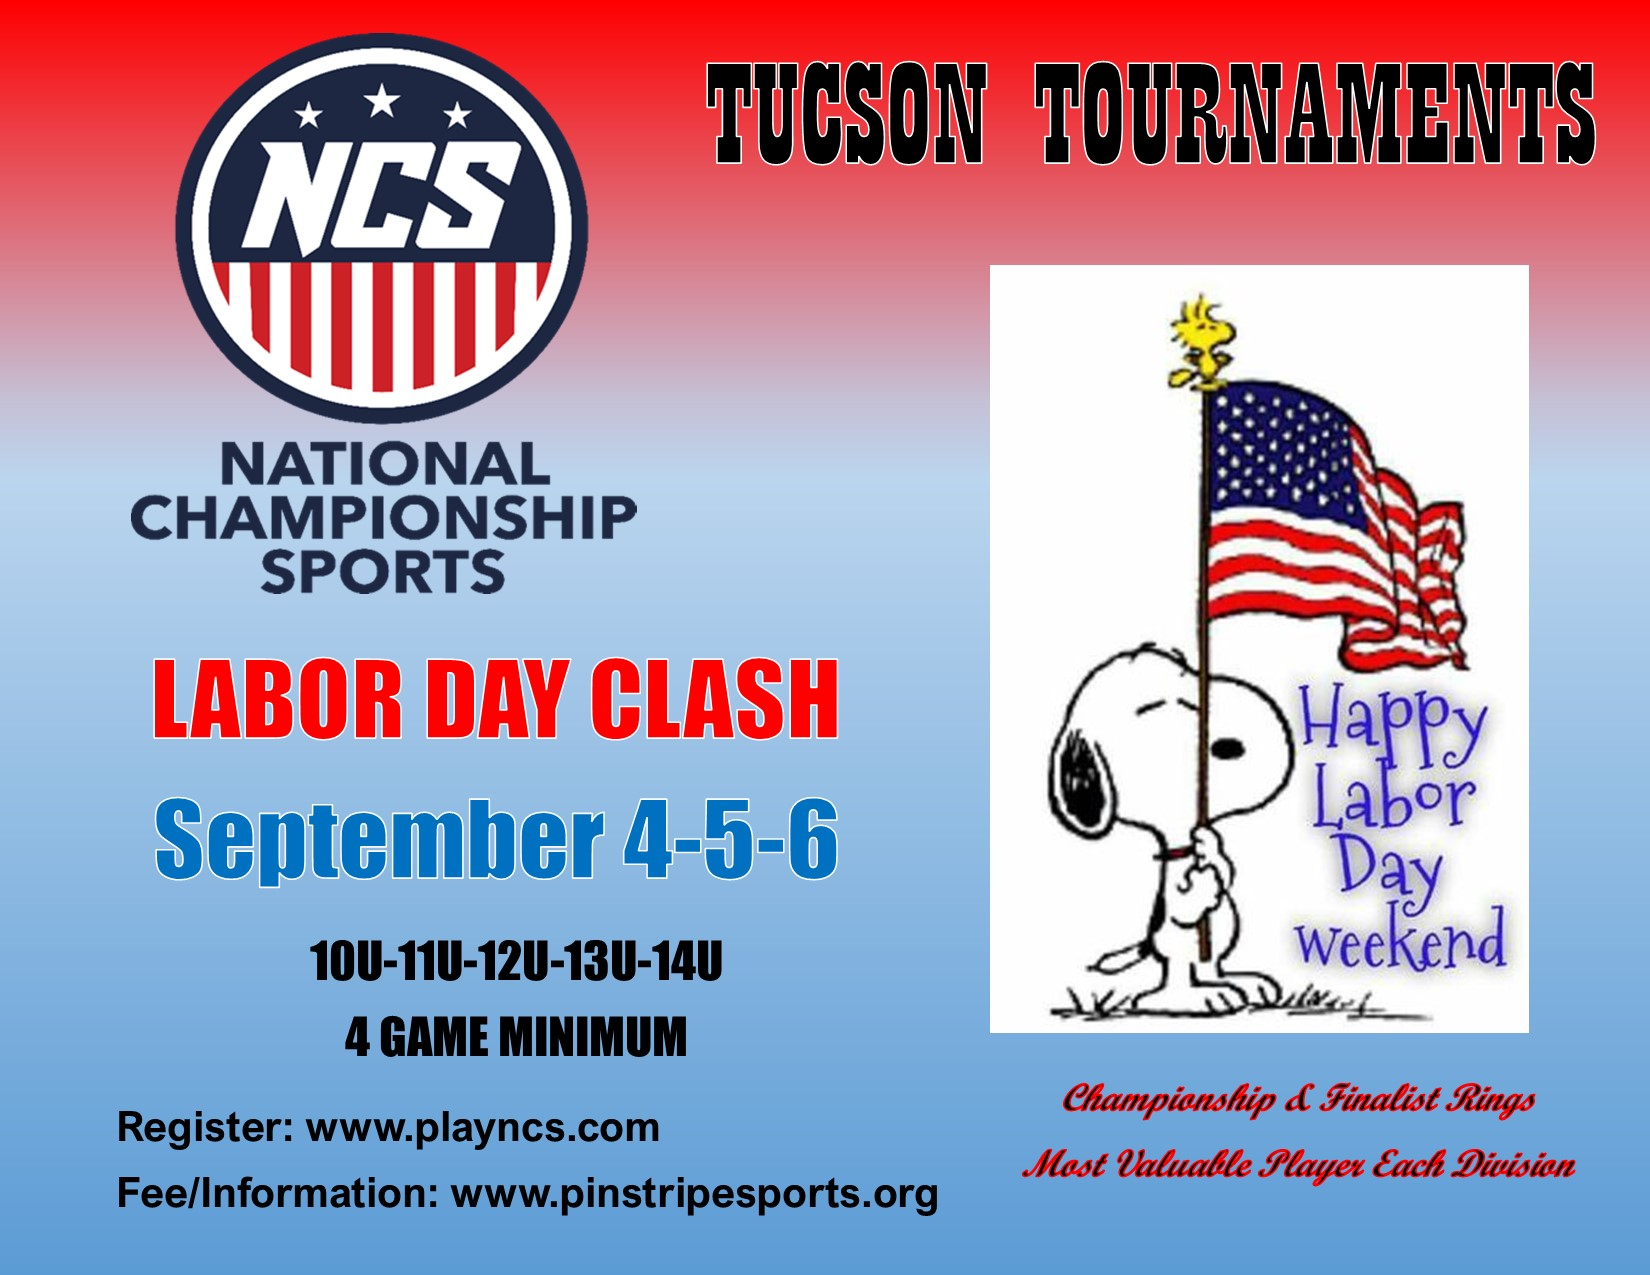 Labor Day Clash 10U, 11U, 12U, 13U & 14U – September 4,5,6, 2021